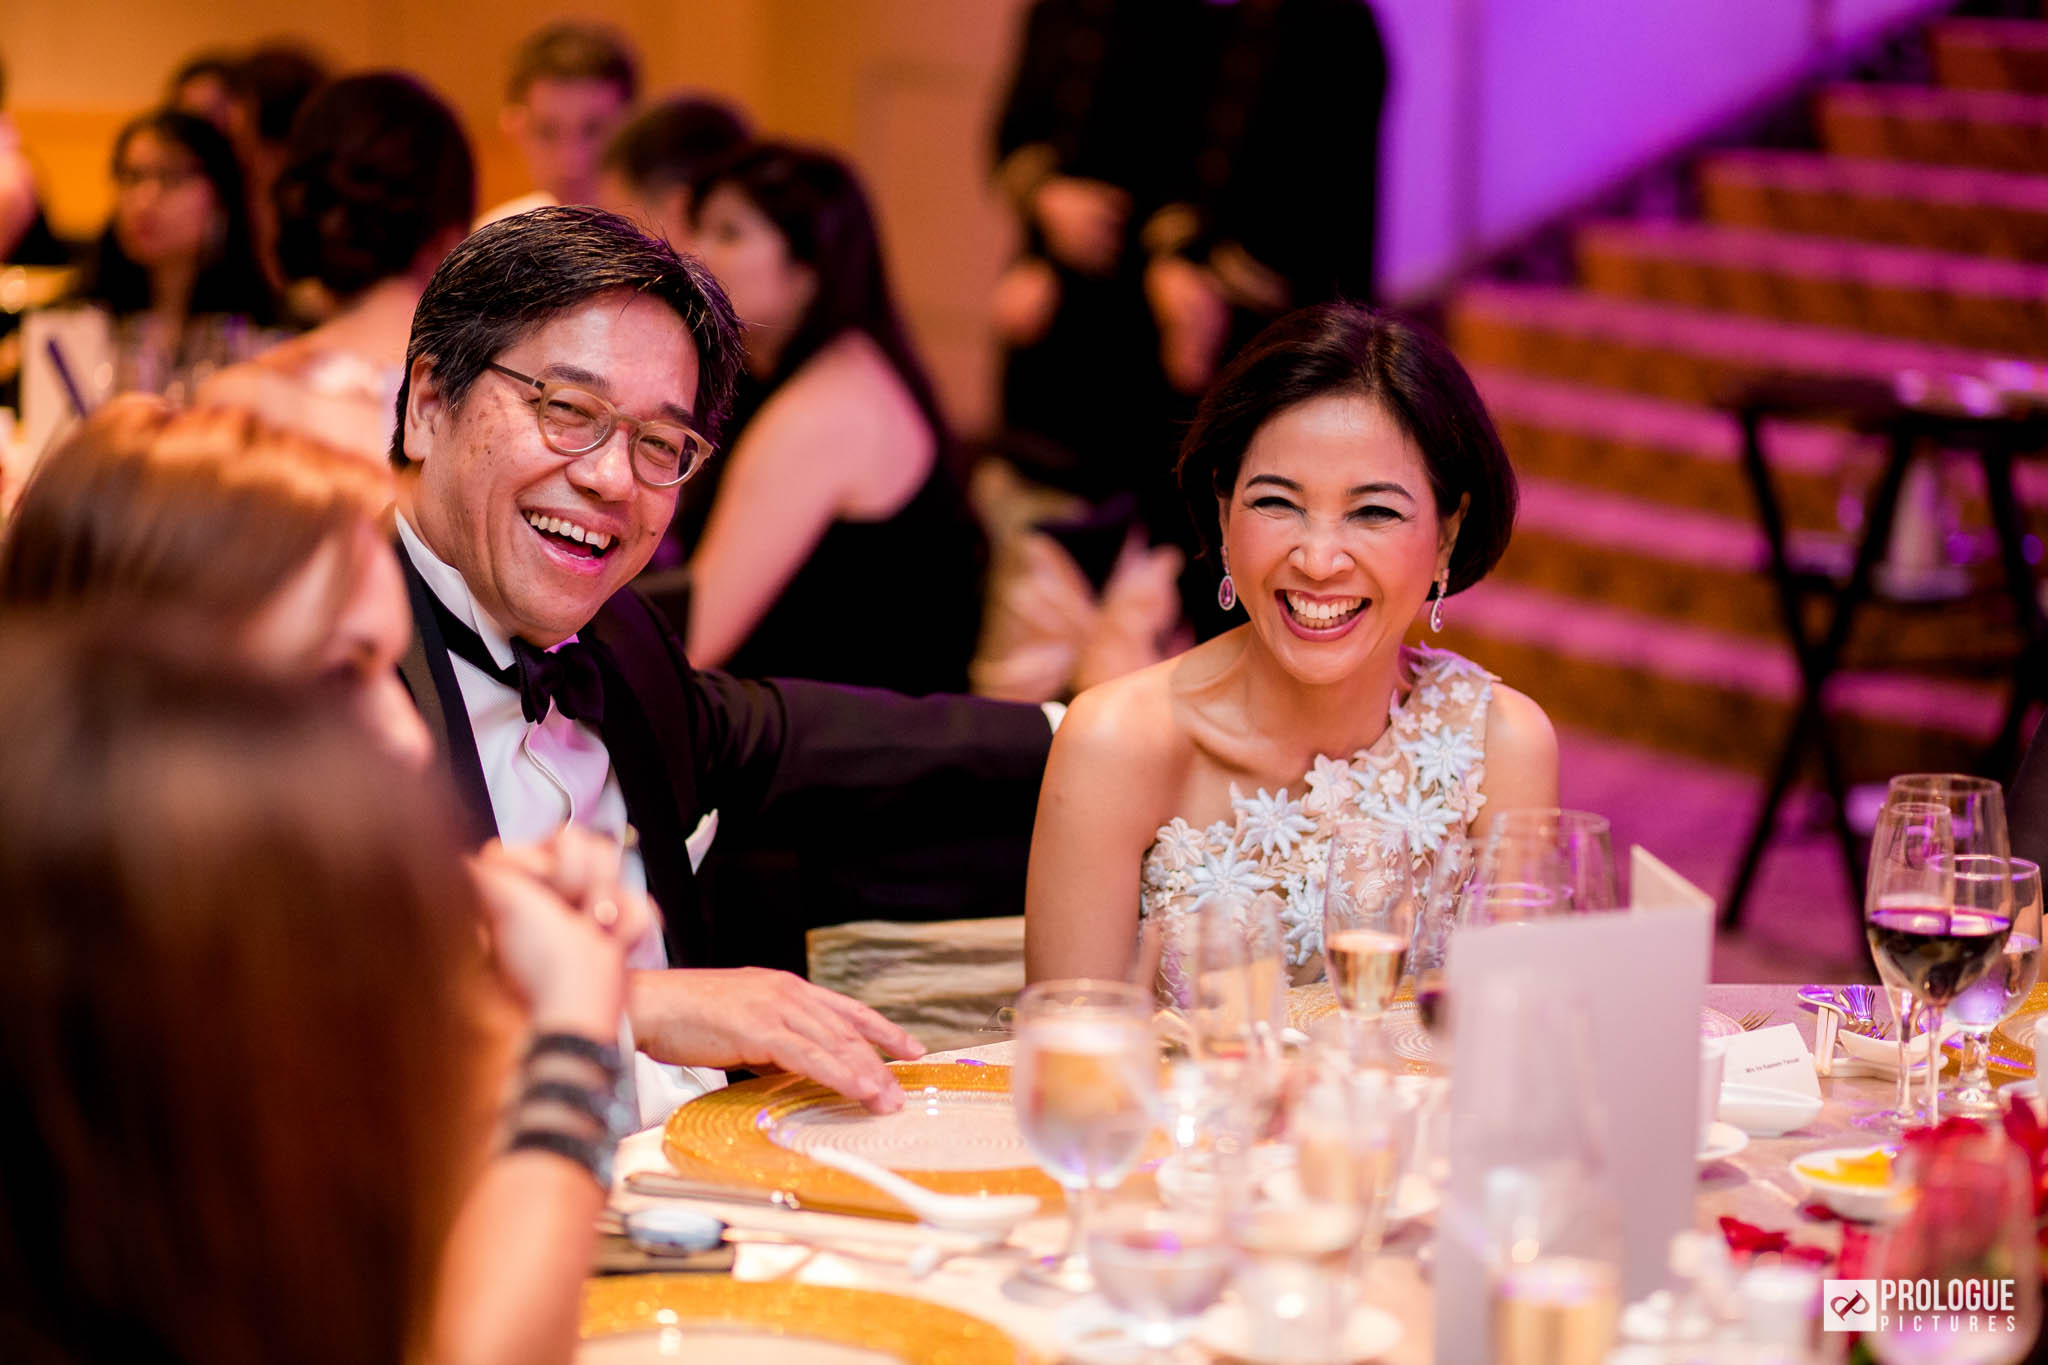 mouawad-125th-anniversary-event-photography-singapore-prologue-pictures-18